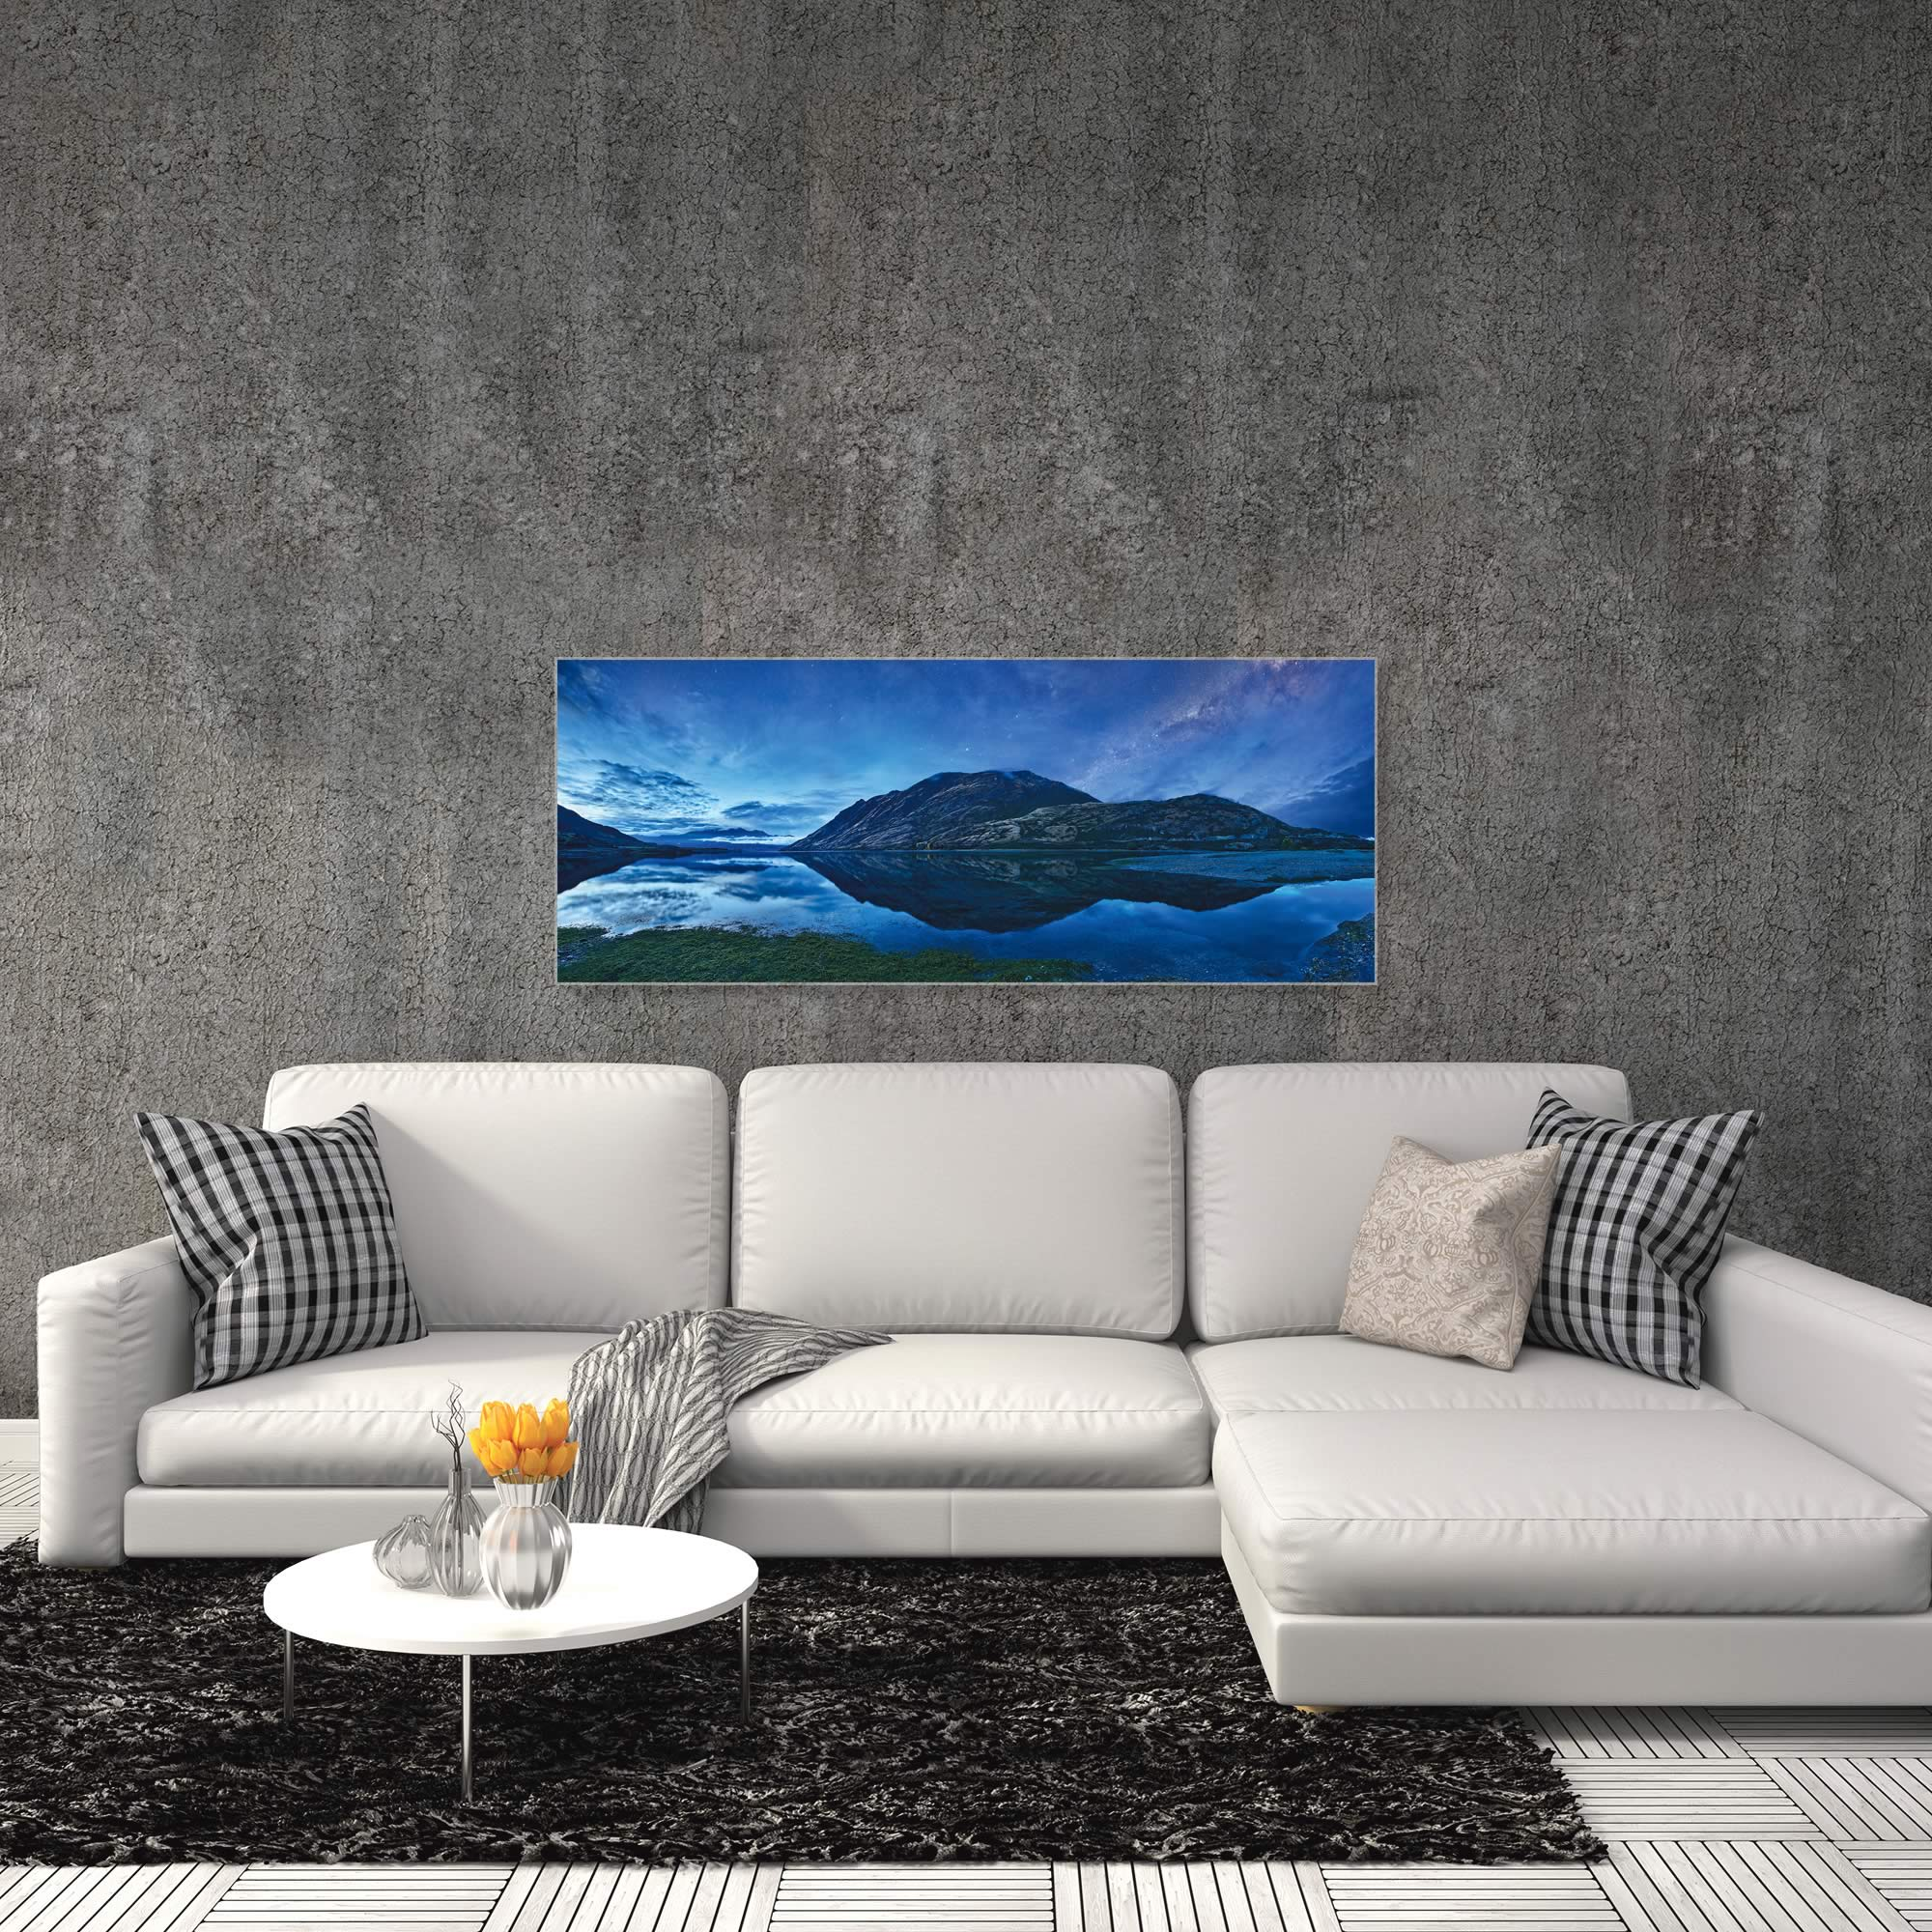 Lake Hawea by Yan Zhang - Landscape Art on Metal or Acrylic - Alternate View 3